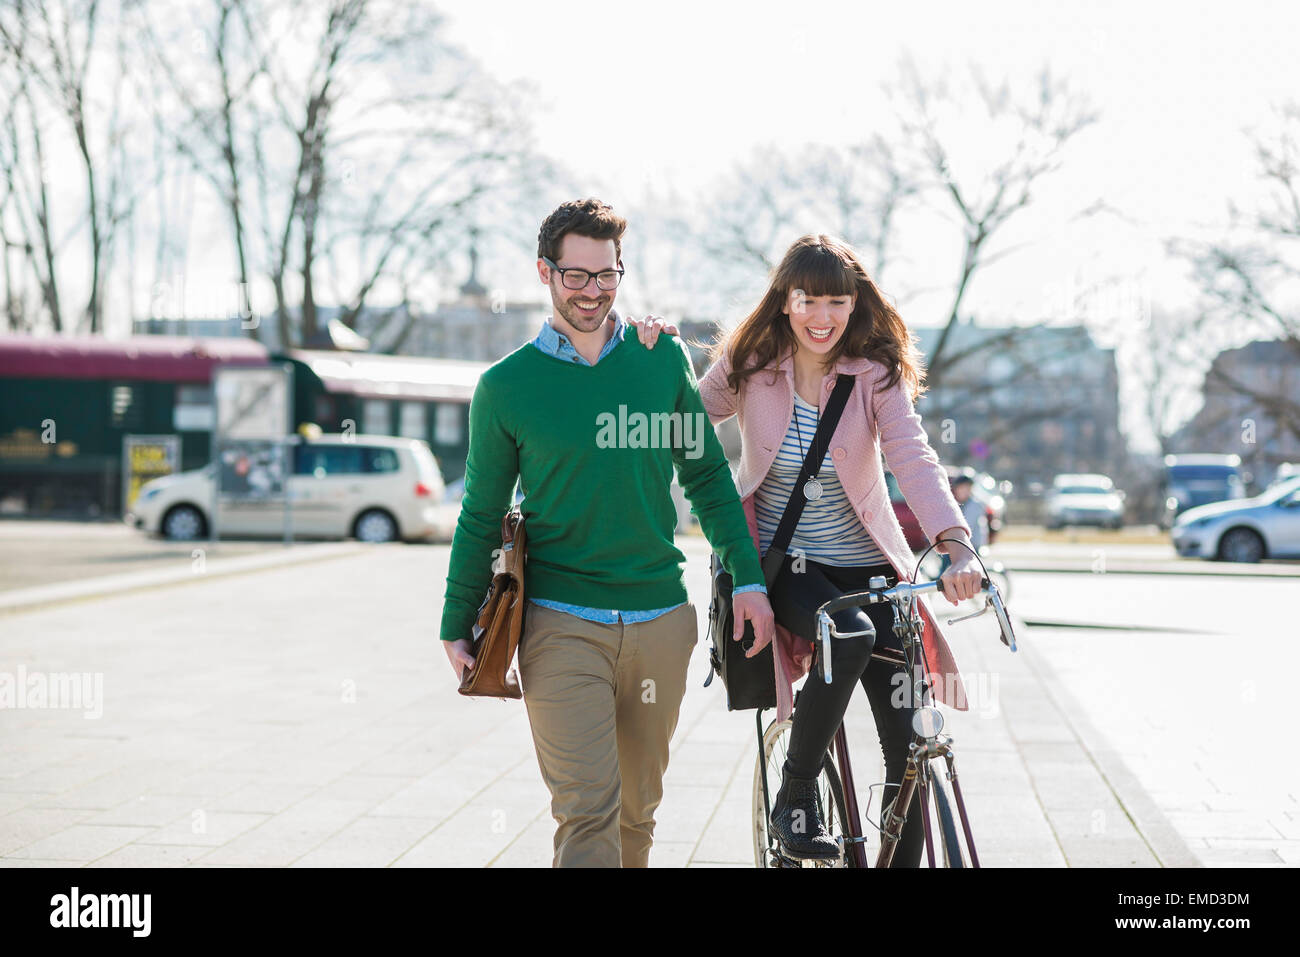 Happy couple going home together, woman riding bicycle - Stock Image